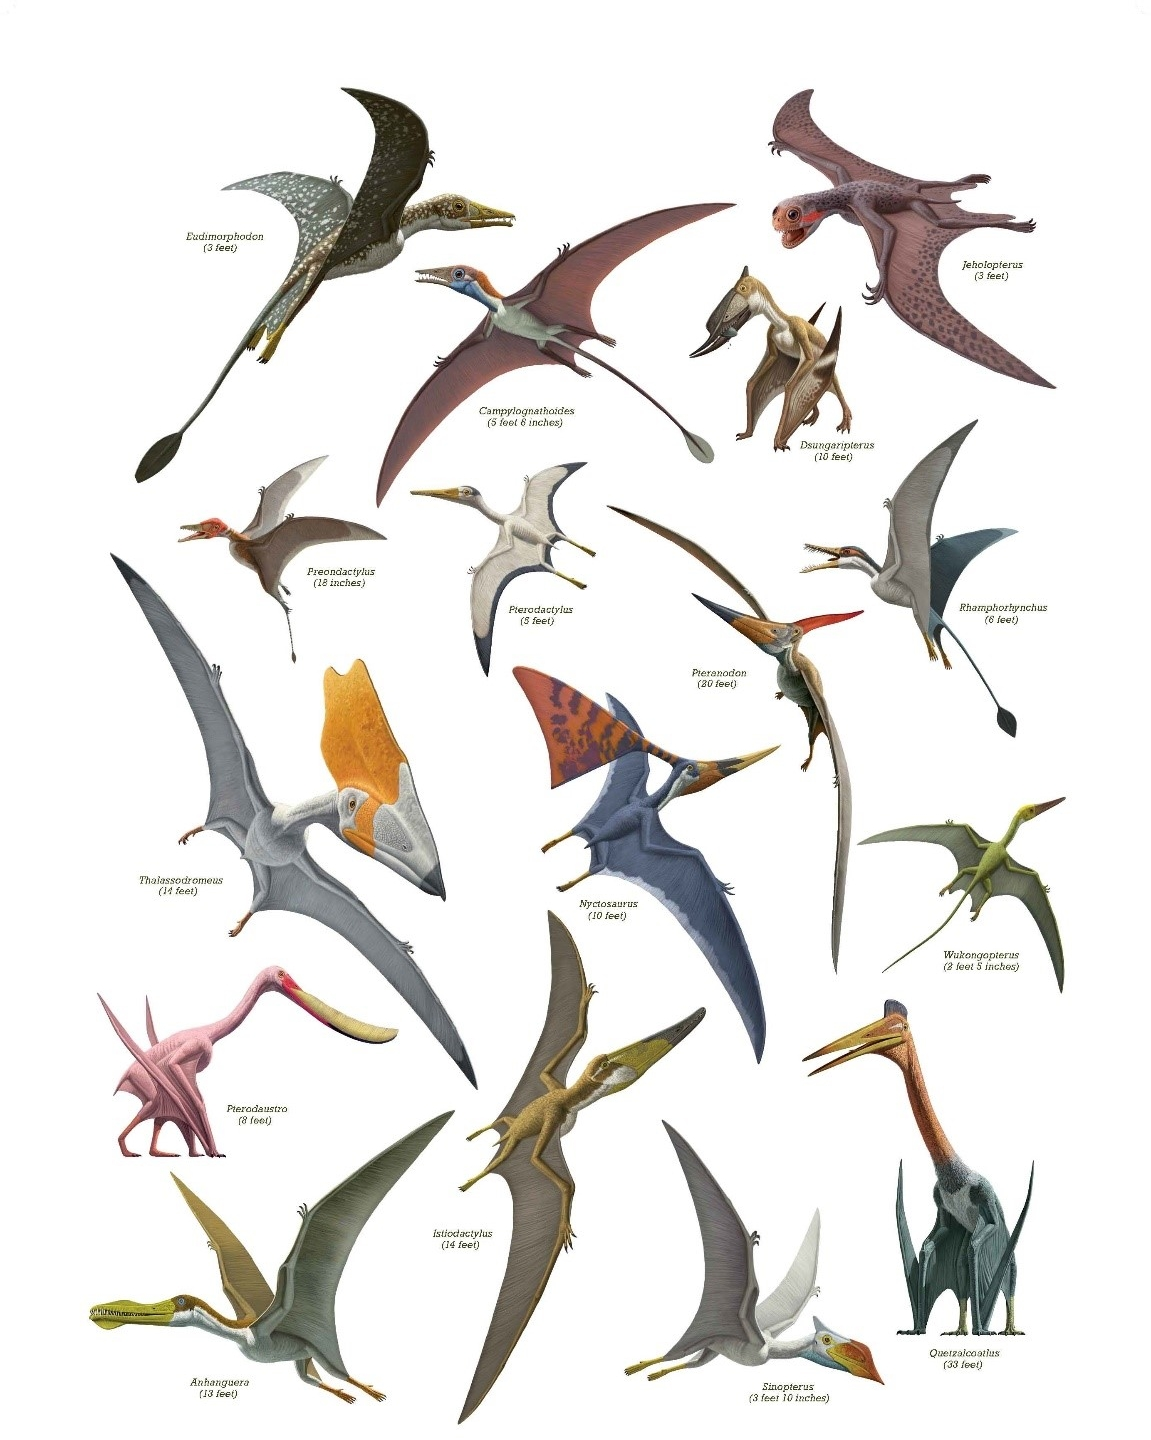 The AMNH's pterosaur poster